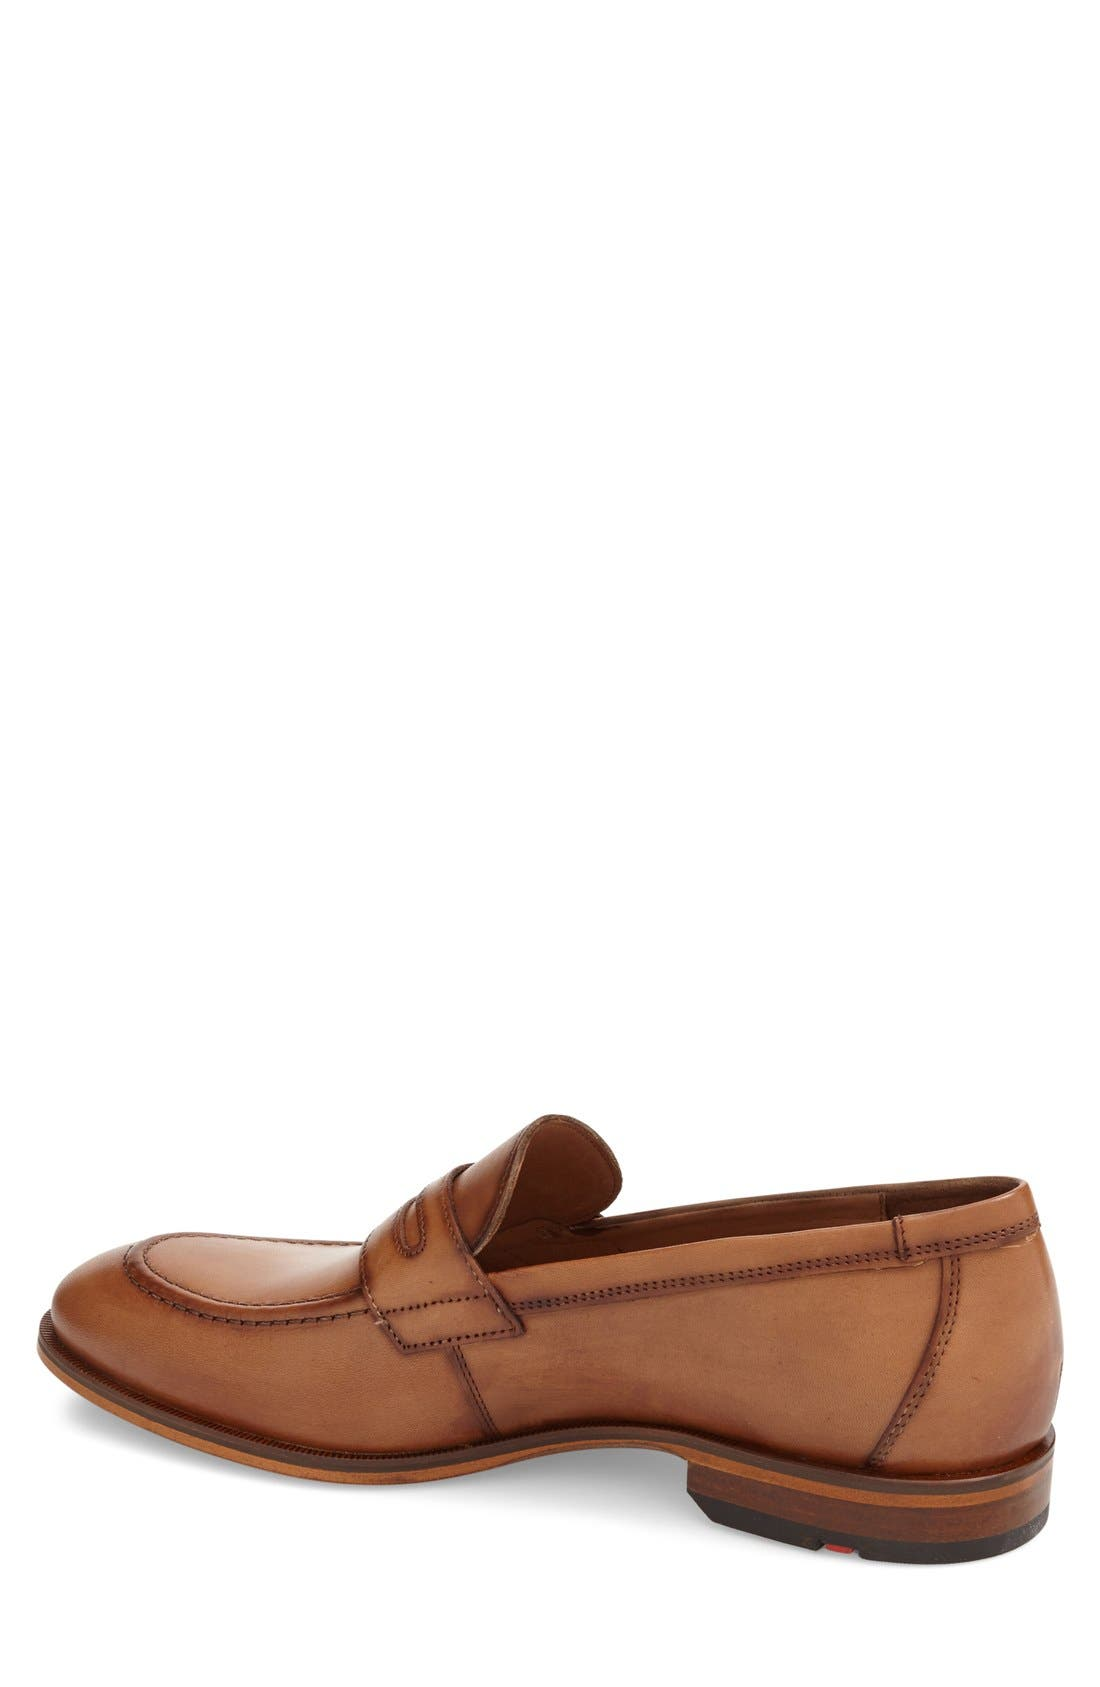 'Pete' Penny Loafer,                             Alternate thumbnail 2, color,                             COGNAC